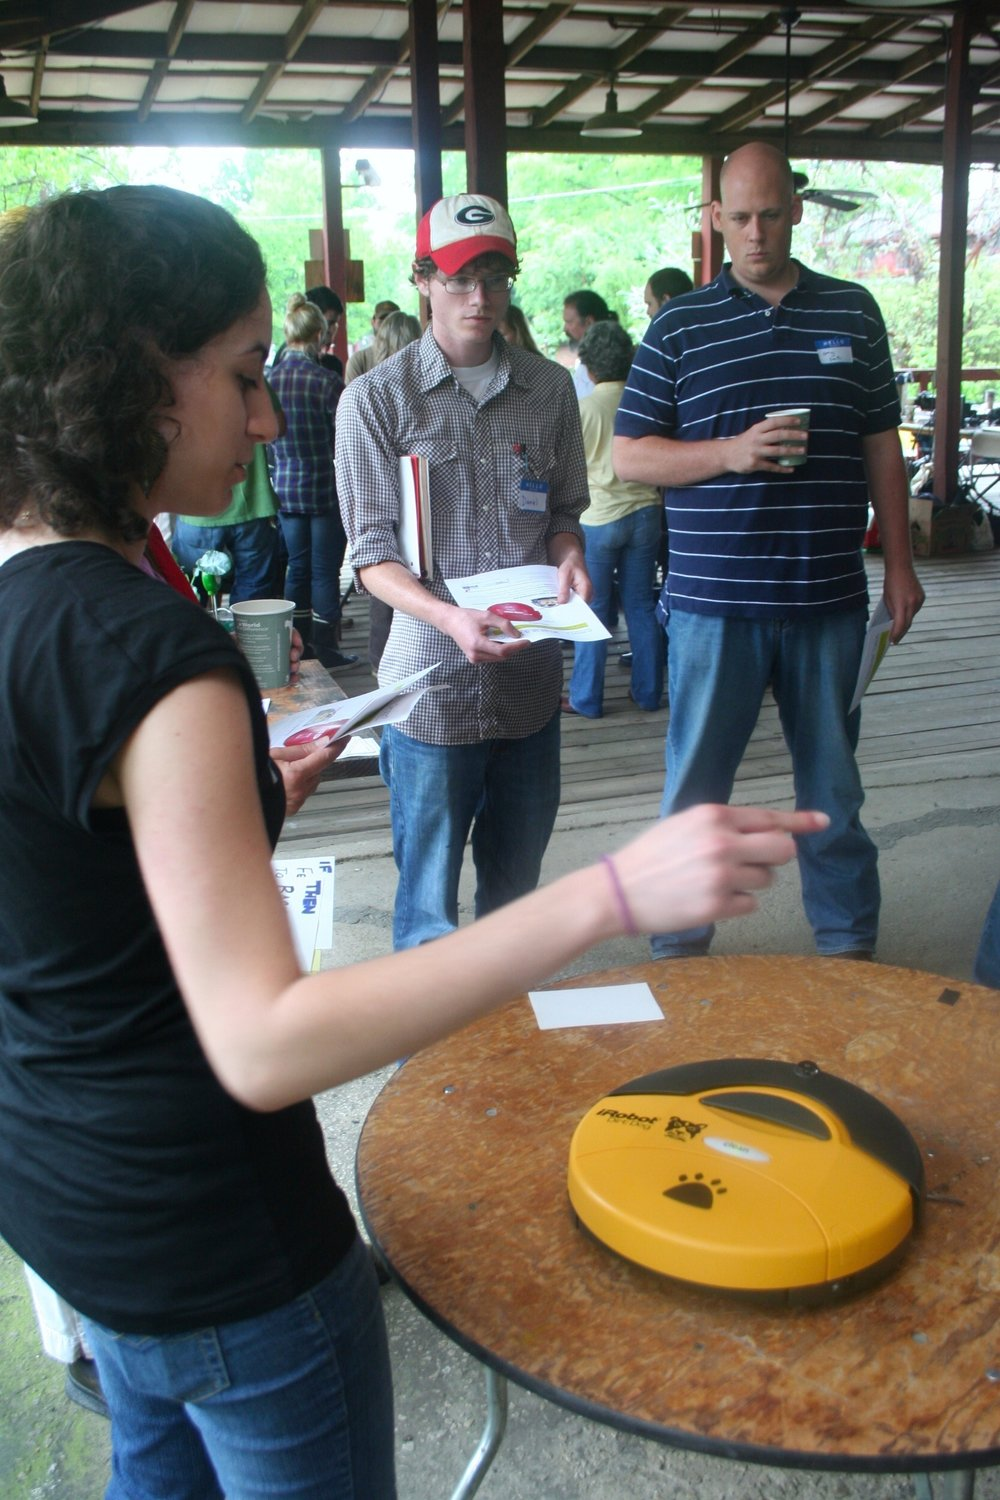 anna-mansour-demonstrates-the-roomba-to-participants_4577277756_o.jpg